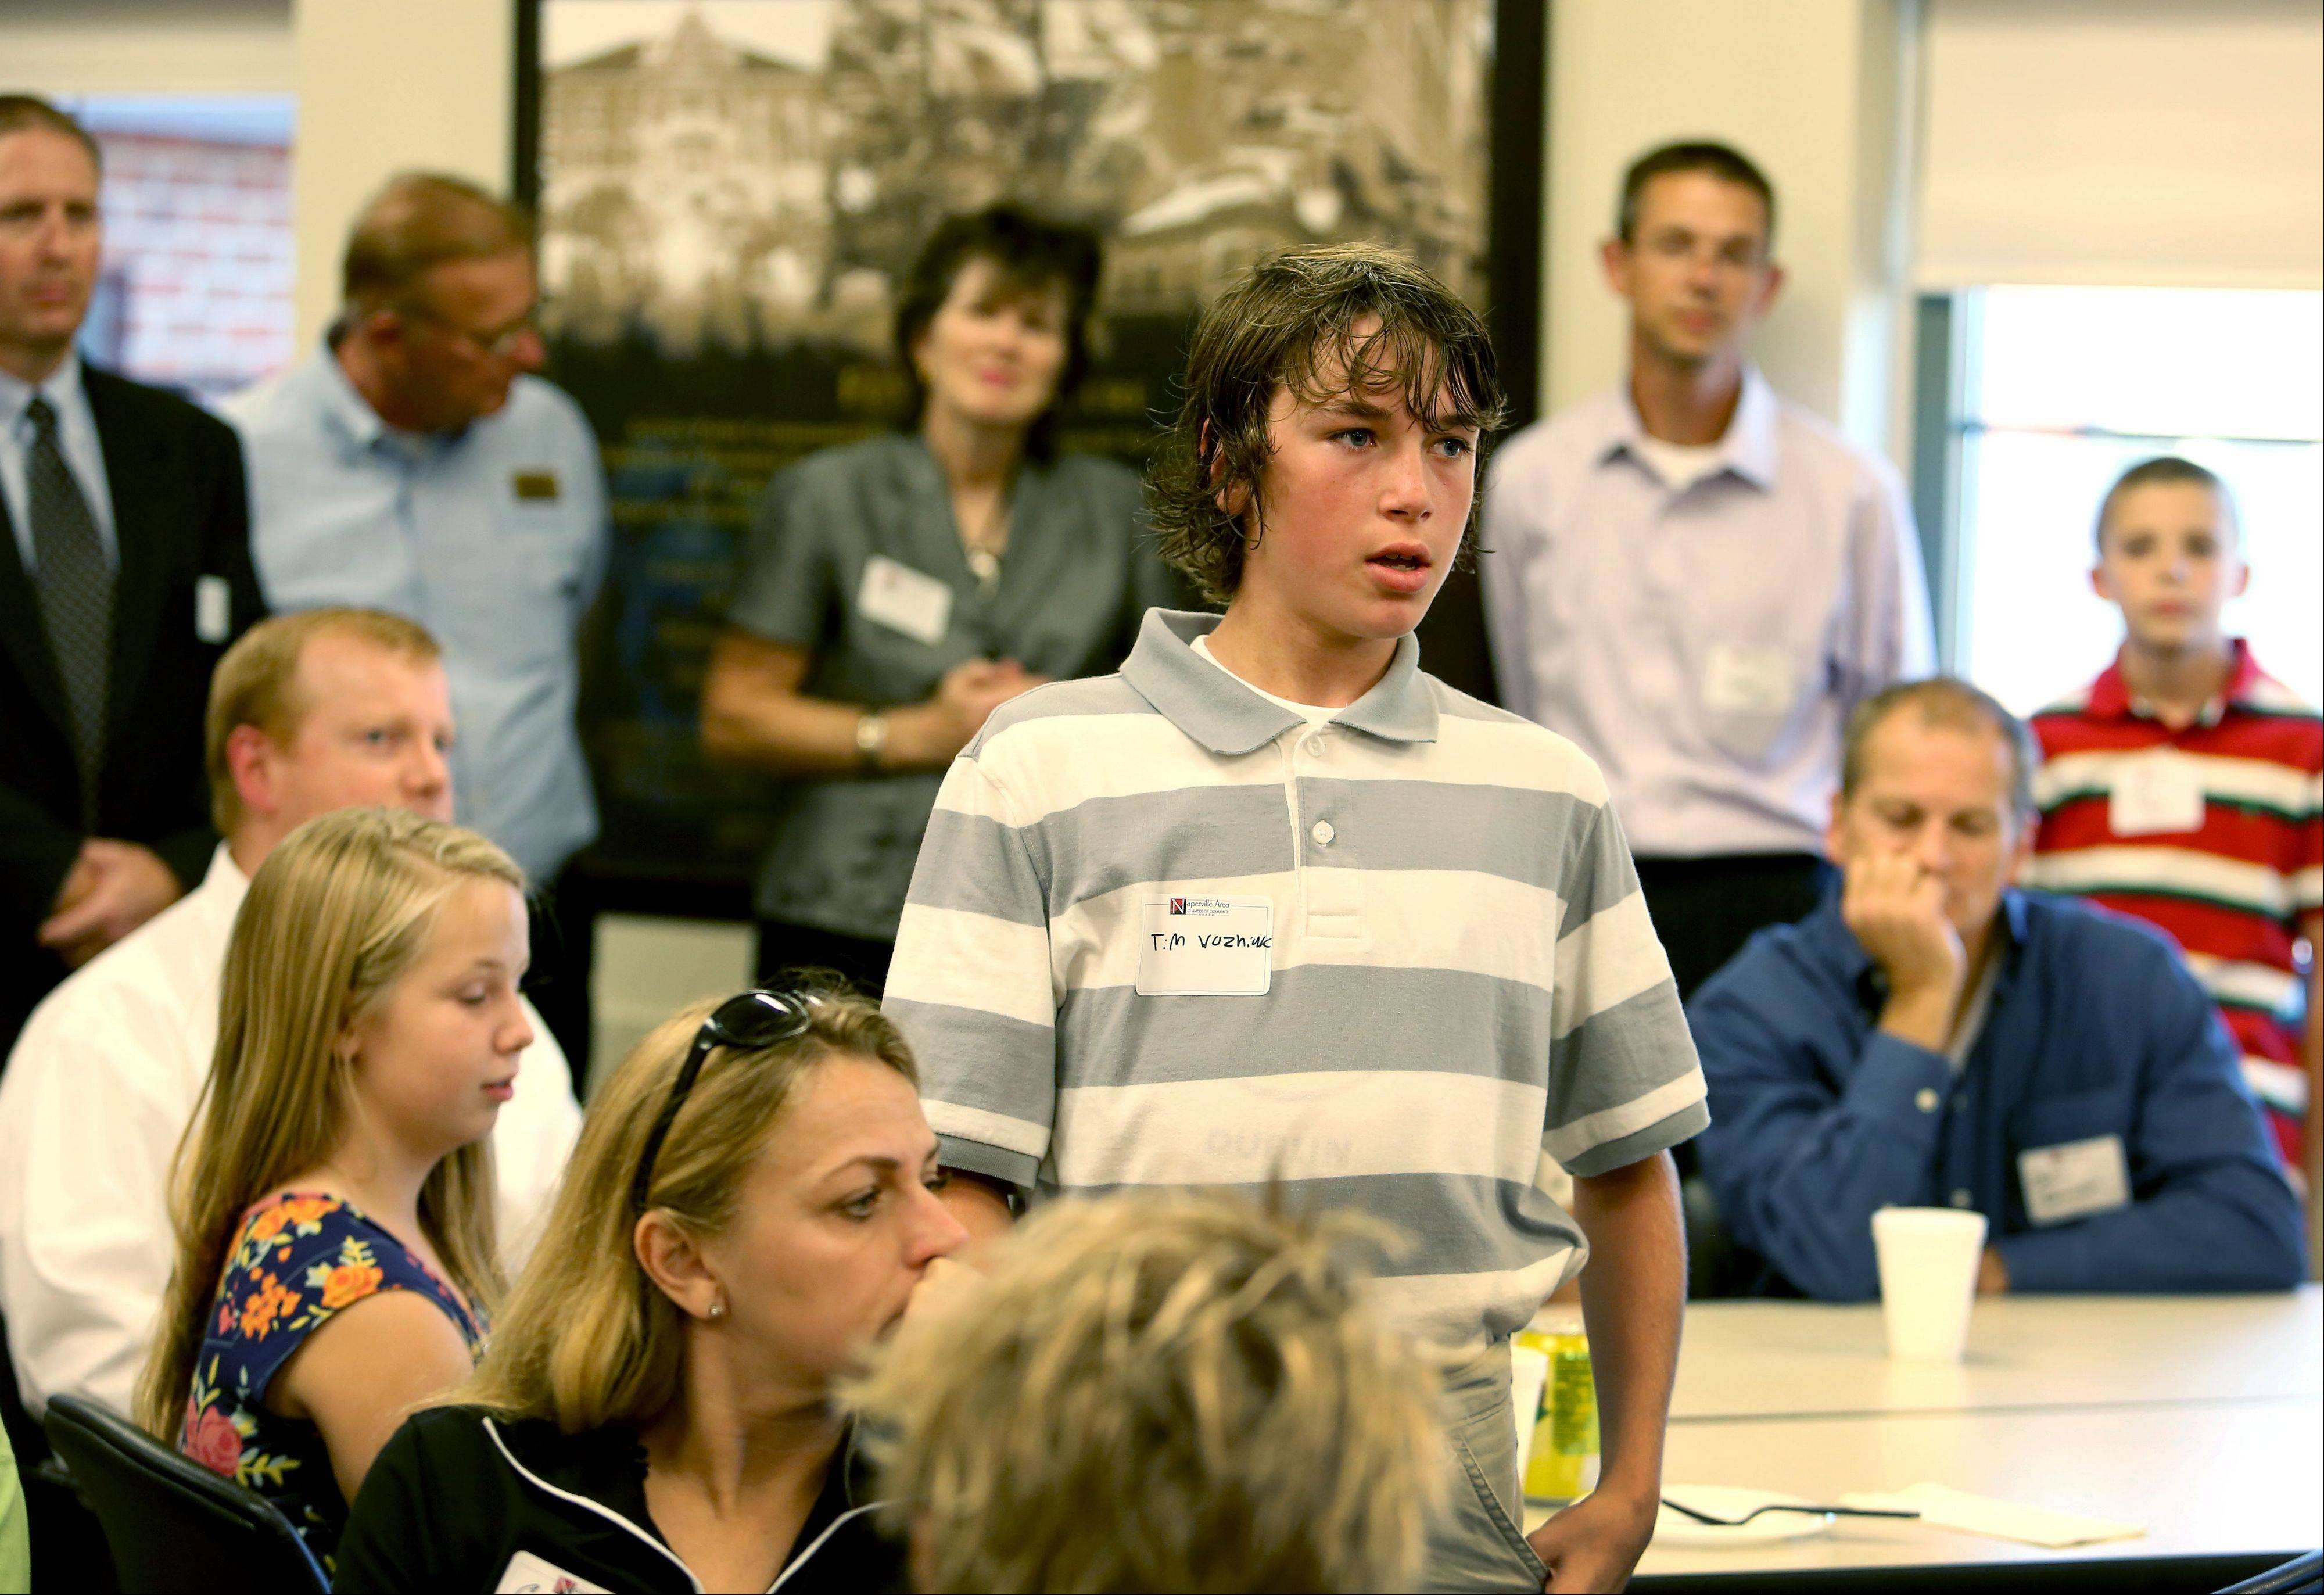 Tim Wozniak, an eighth-grader at Jefferson Junior High School in Naperville, introduces his business idea � a gym offering fitness through obstacle courses and dodgeball � during a meet and greet the Naperville Area Chamber of Commerce sponsored for participants in its first class of the Young Entrepreneurs Academy.